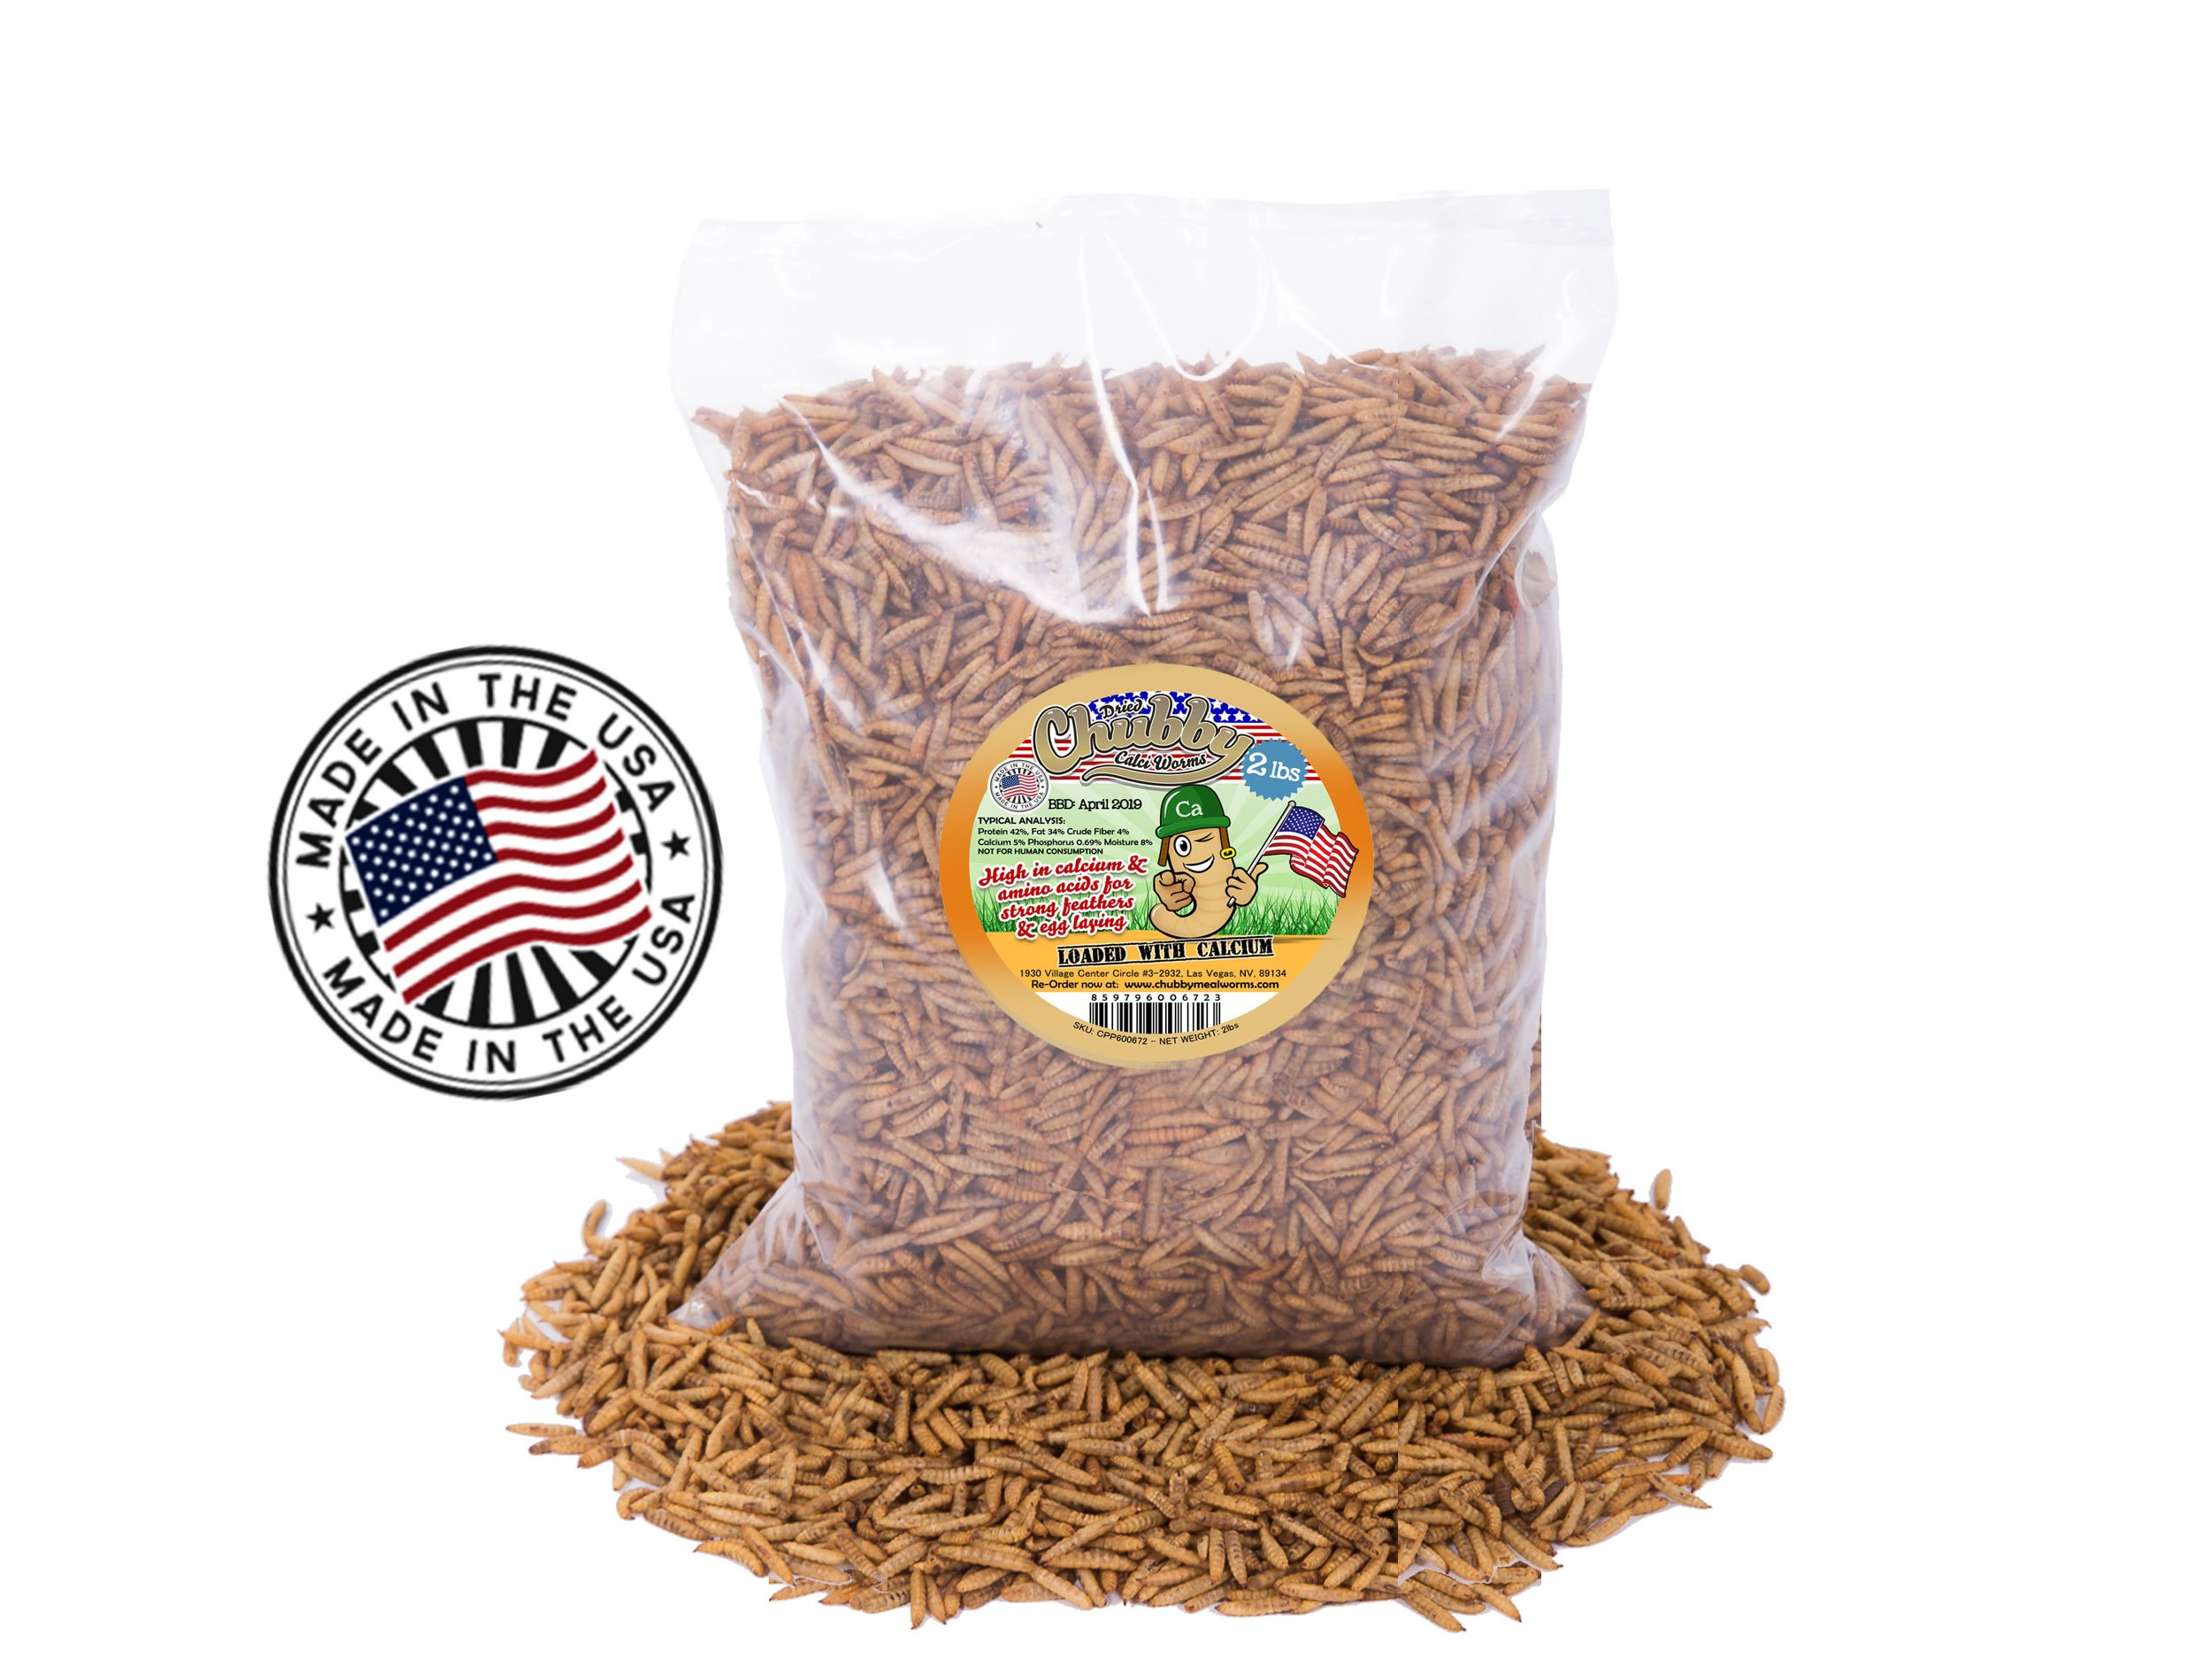 2Lbs Chubby Dried Calci Worms - 100% MADE IN THE USA - Black Soldier Fly Larvae - Wild Bird / Chicken Treats